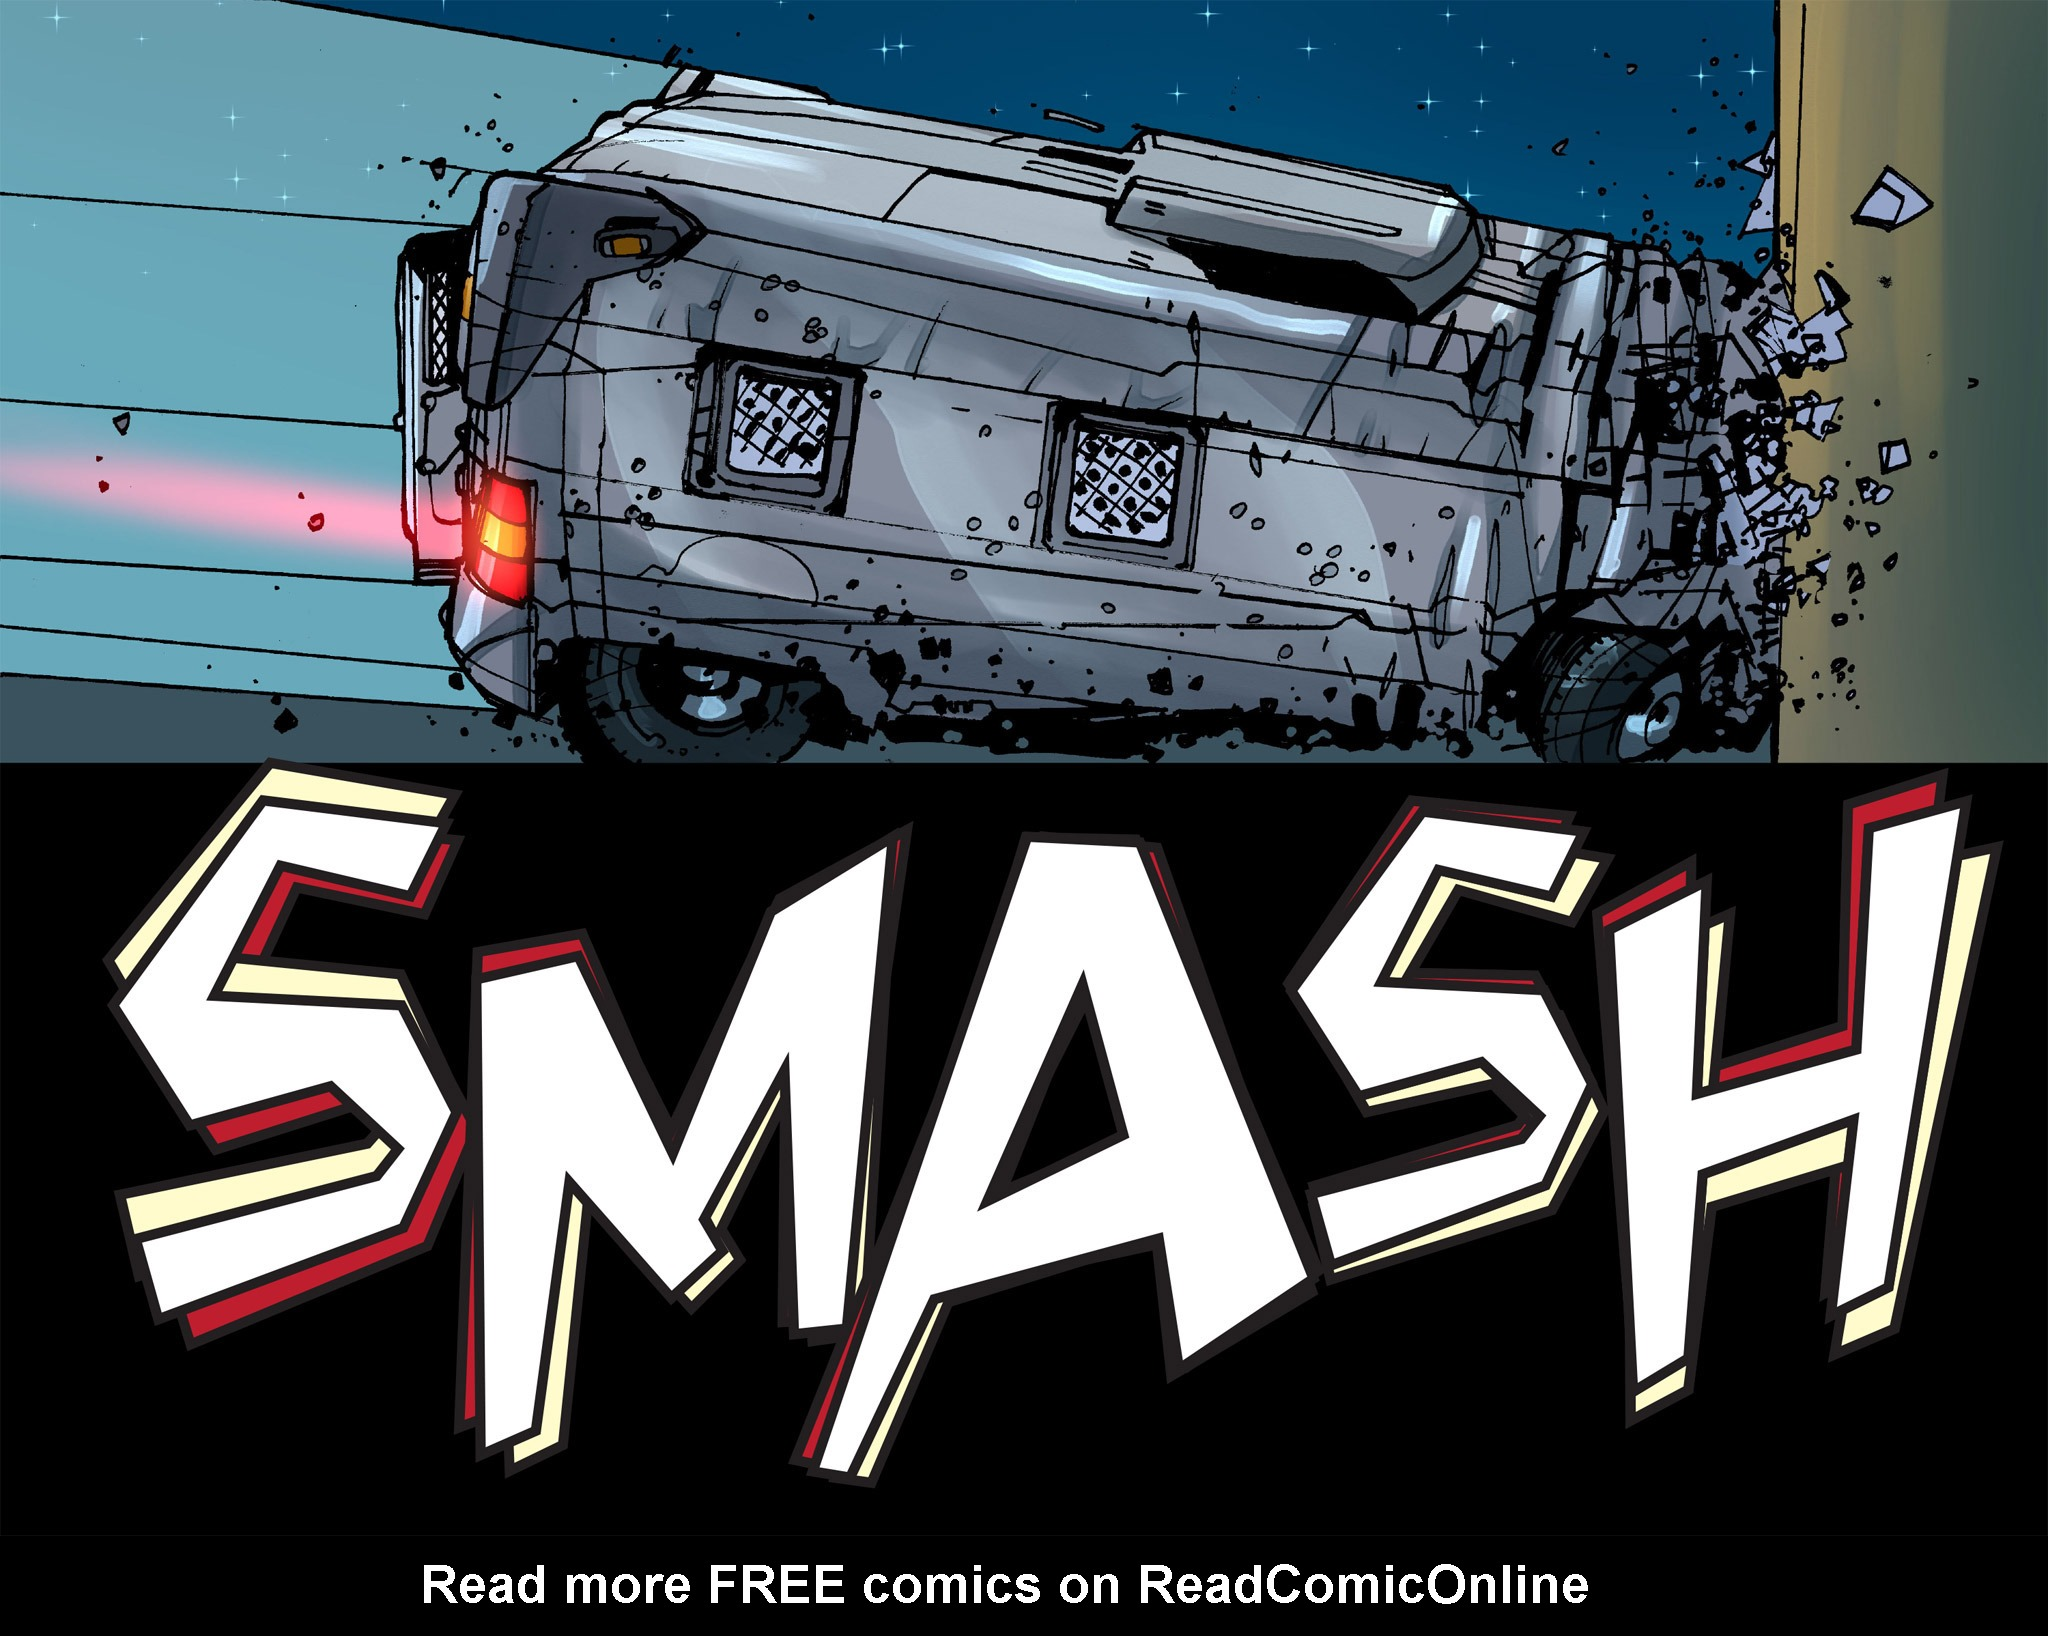 Read online Amazing Spider-Man: Who Am I? comic -  Issue # Full (Part 1) - 125